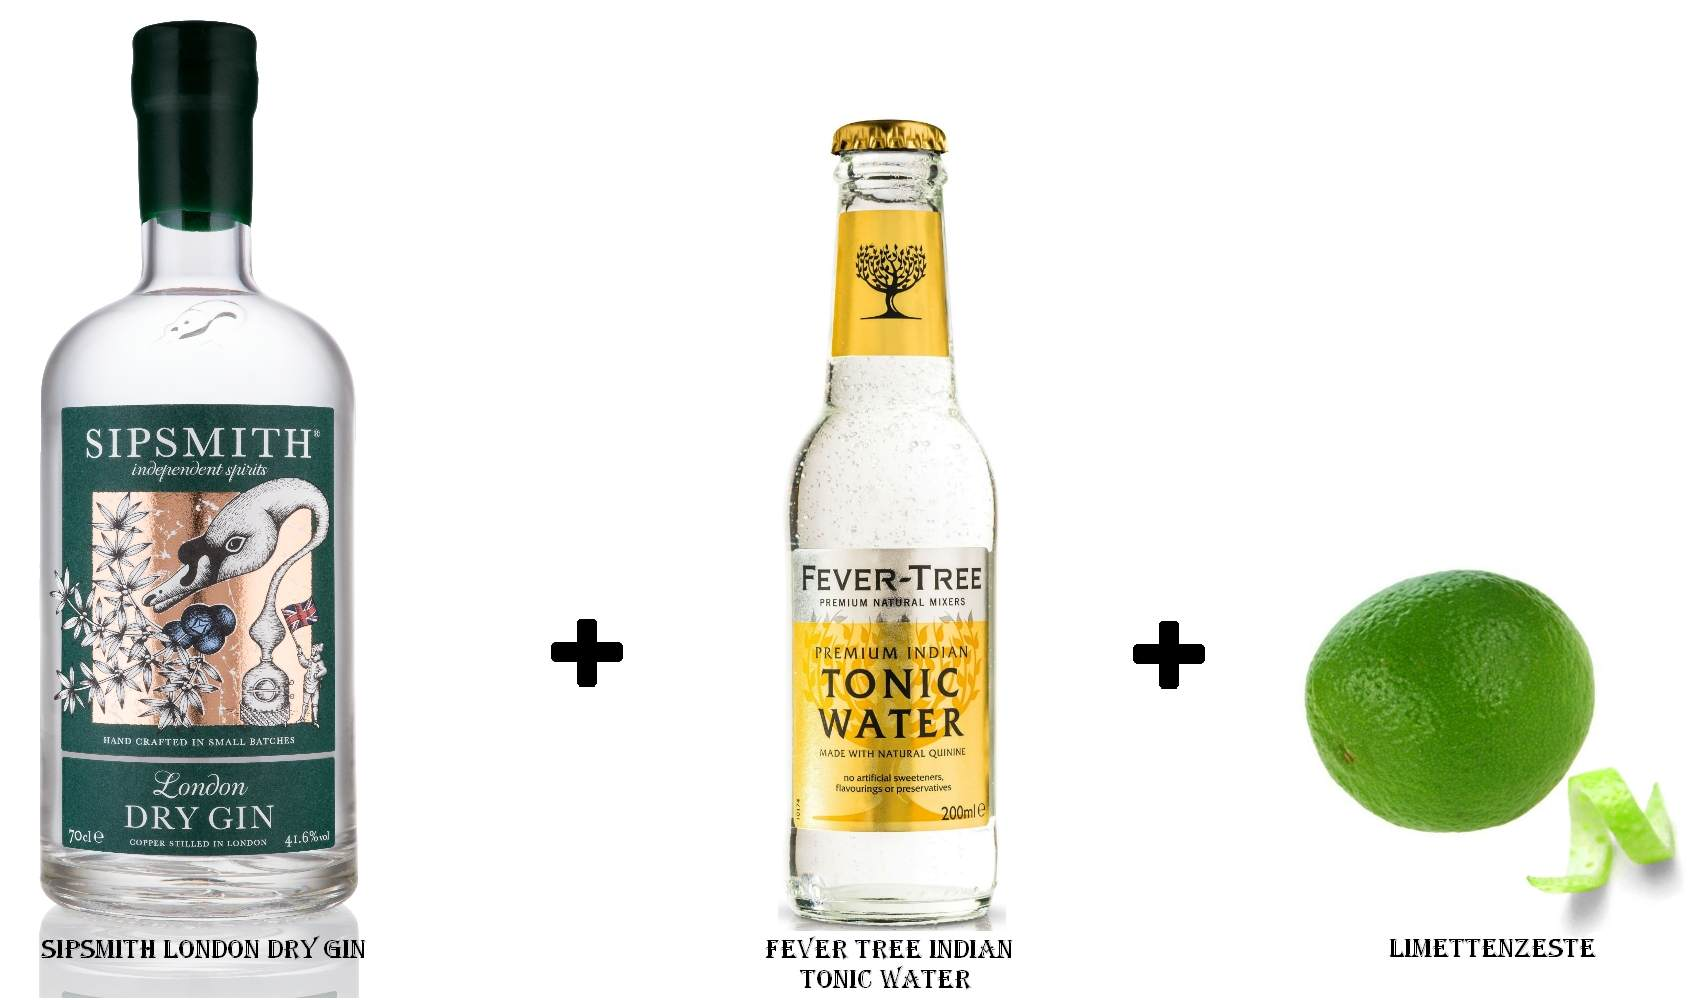 Sipsmith London Dry Gin + Fever Tree Indian Tonic Water + Limettenzeste